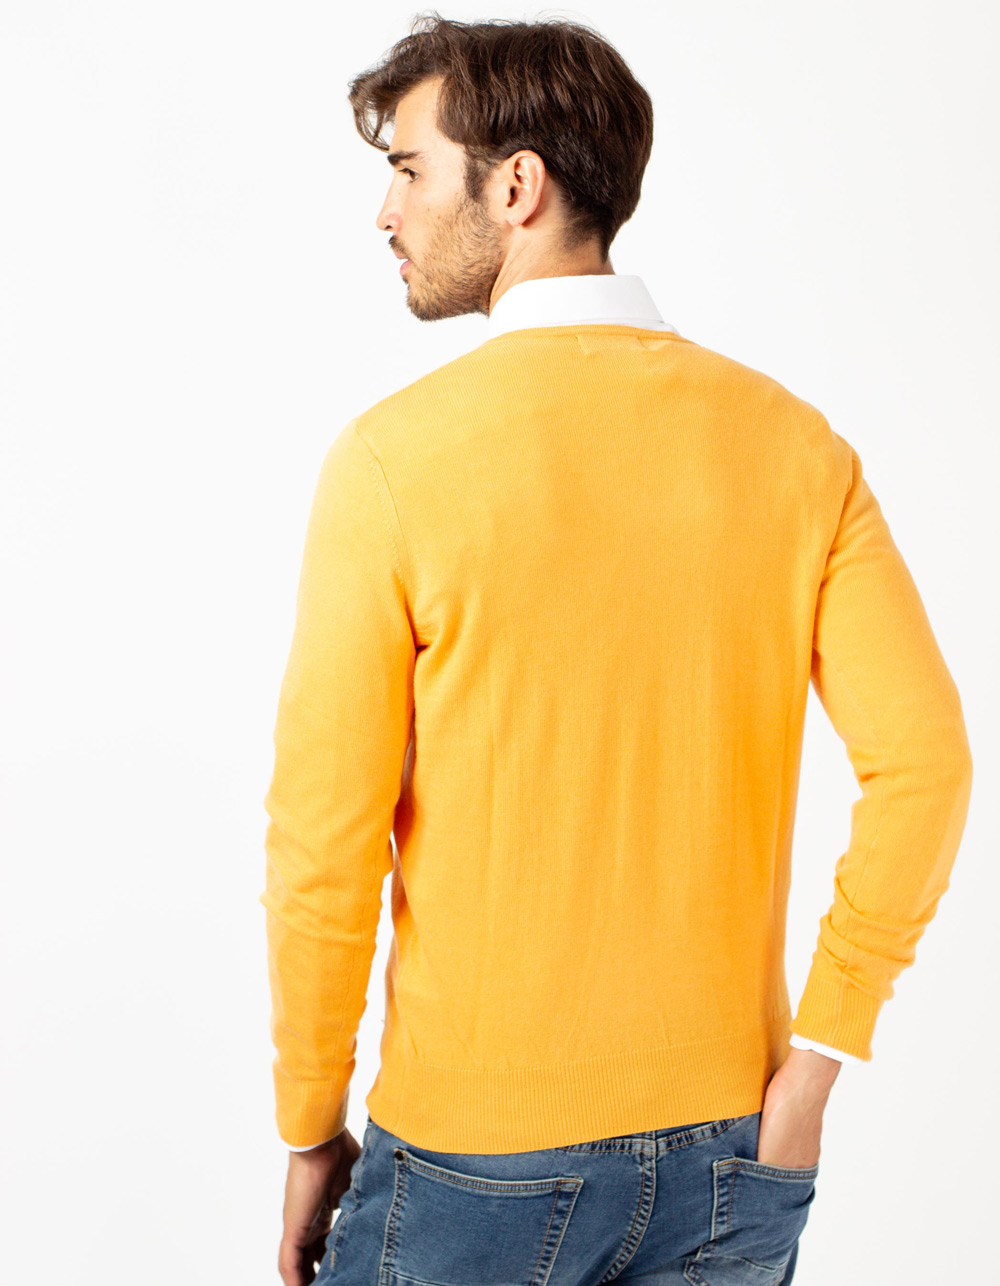 Jersey de cuello pico mostaza - Backside